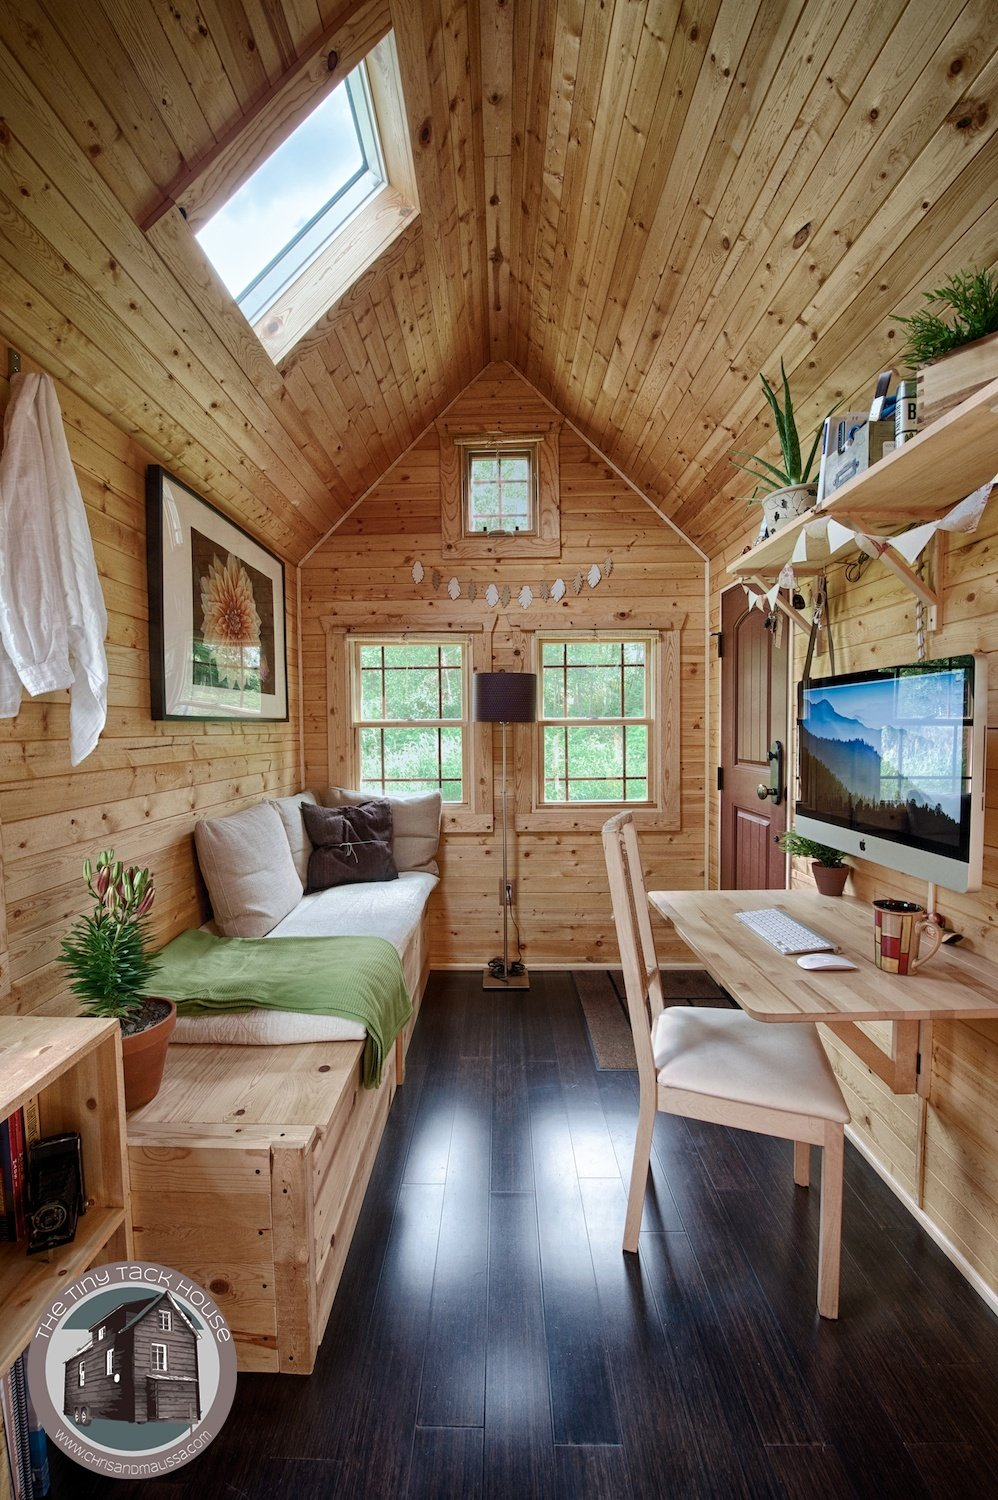 Image Via Tiny Tack House Houses Interior